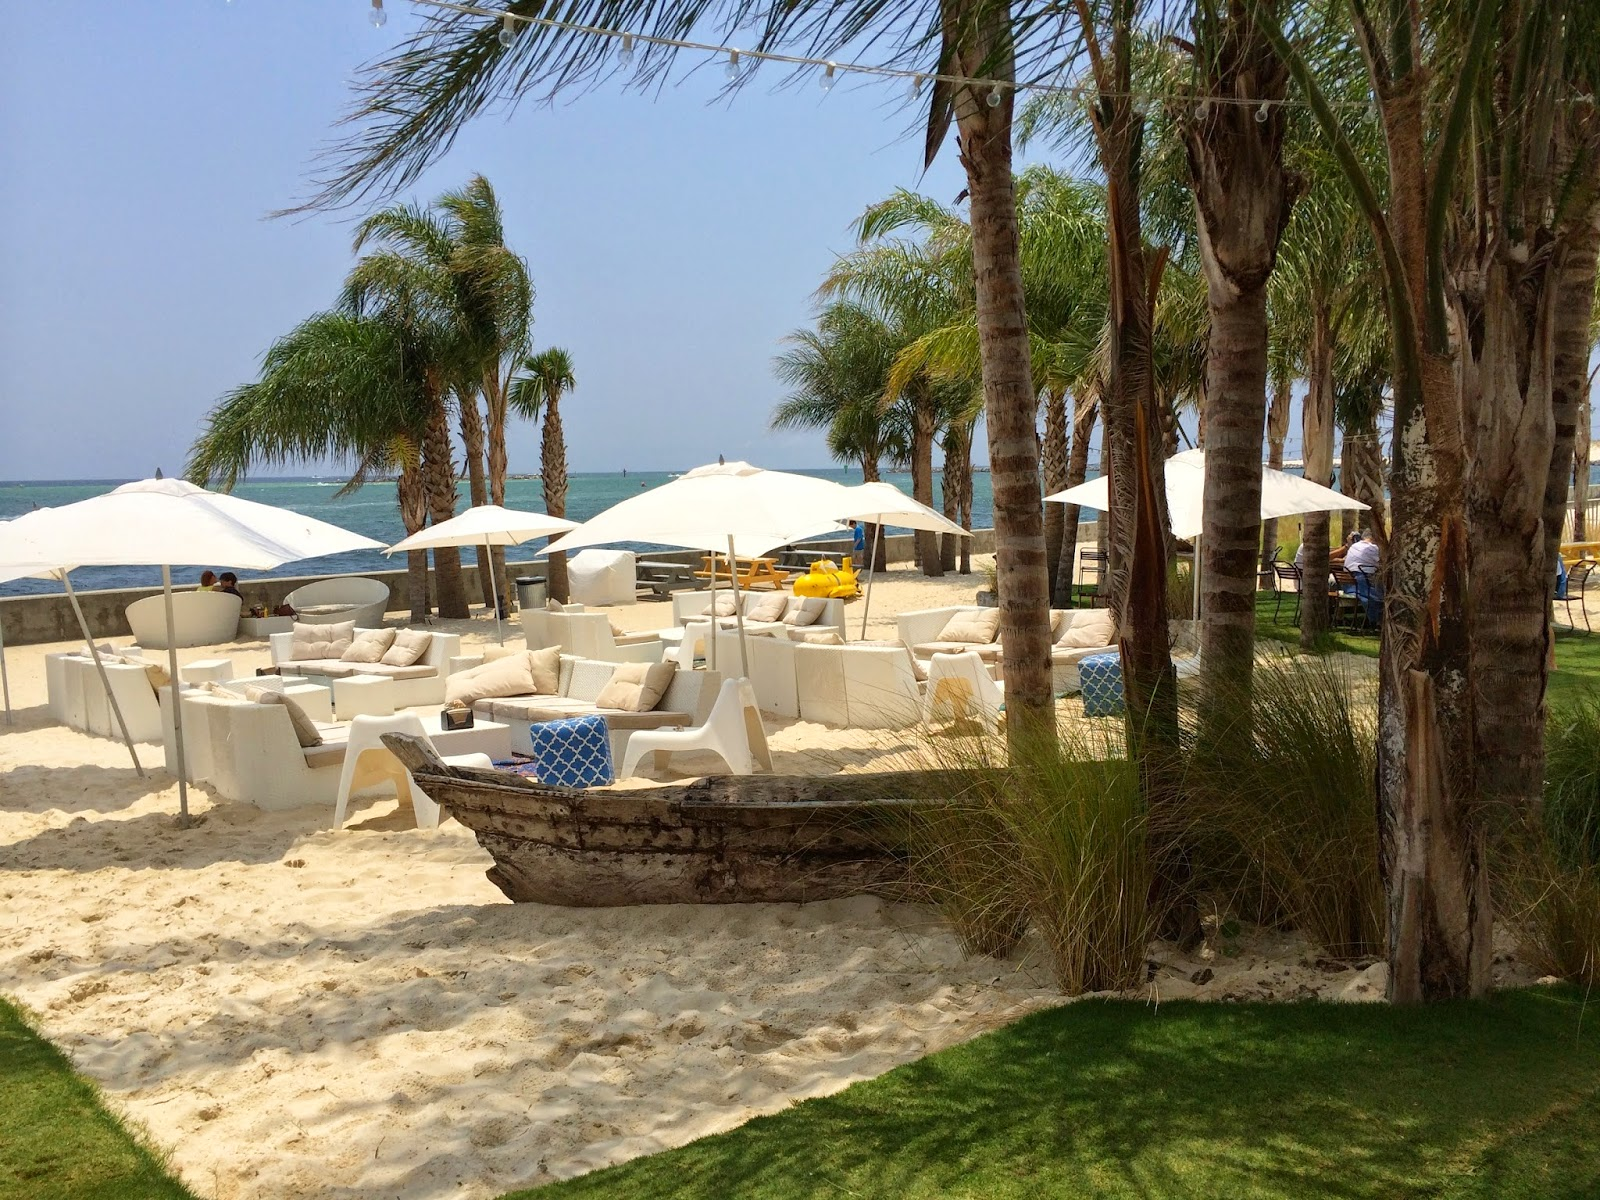 Beach-side Dining at The Gulf